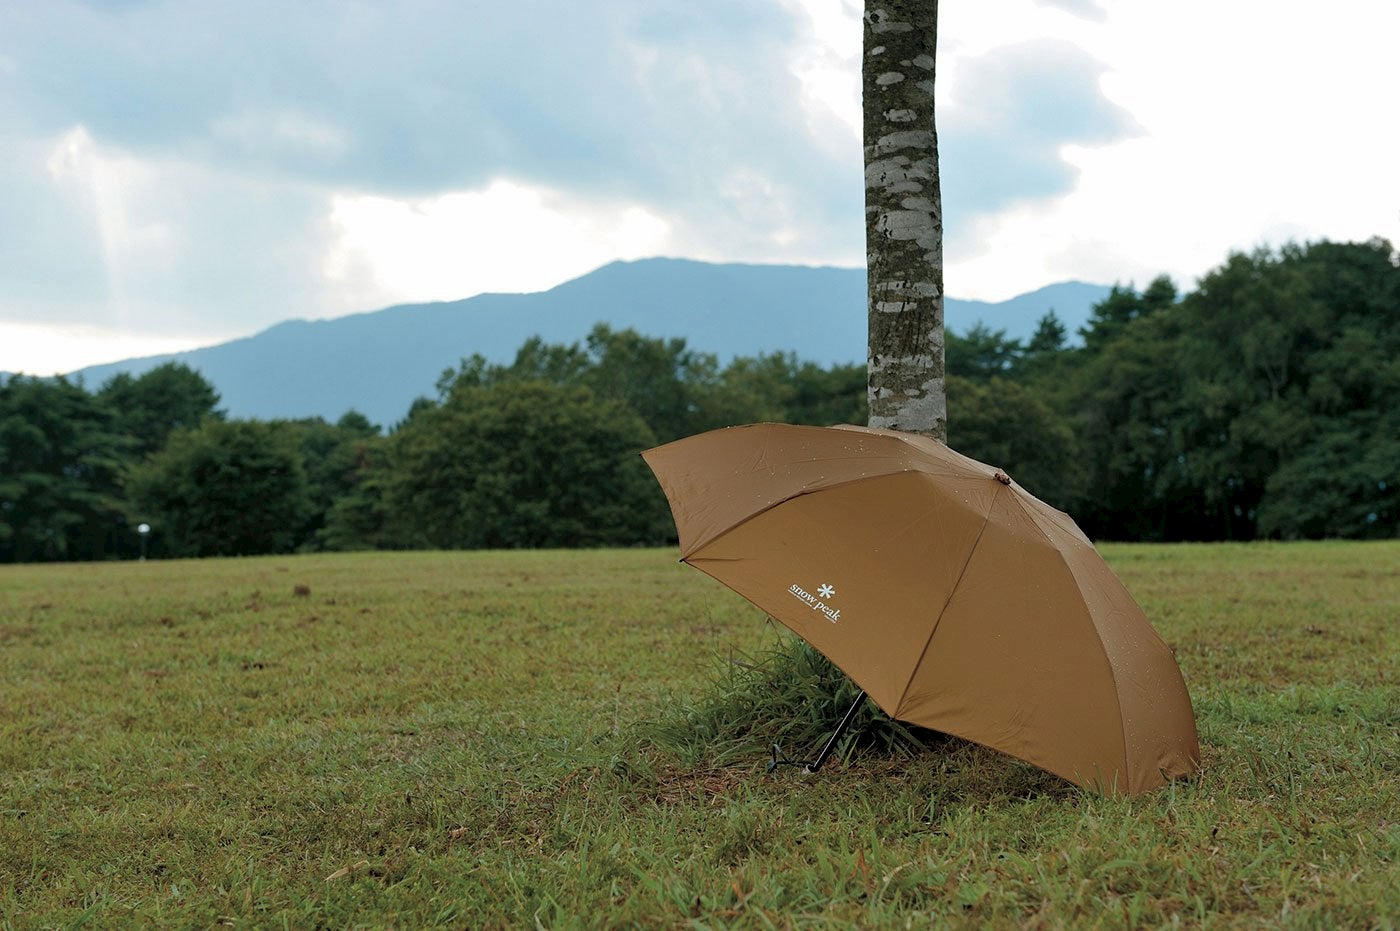 Umbrella in a field with a mountain landscape in the background.